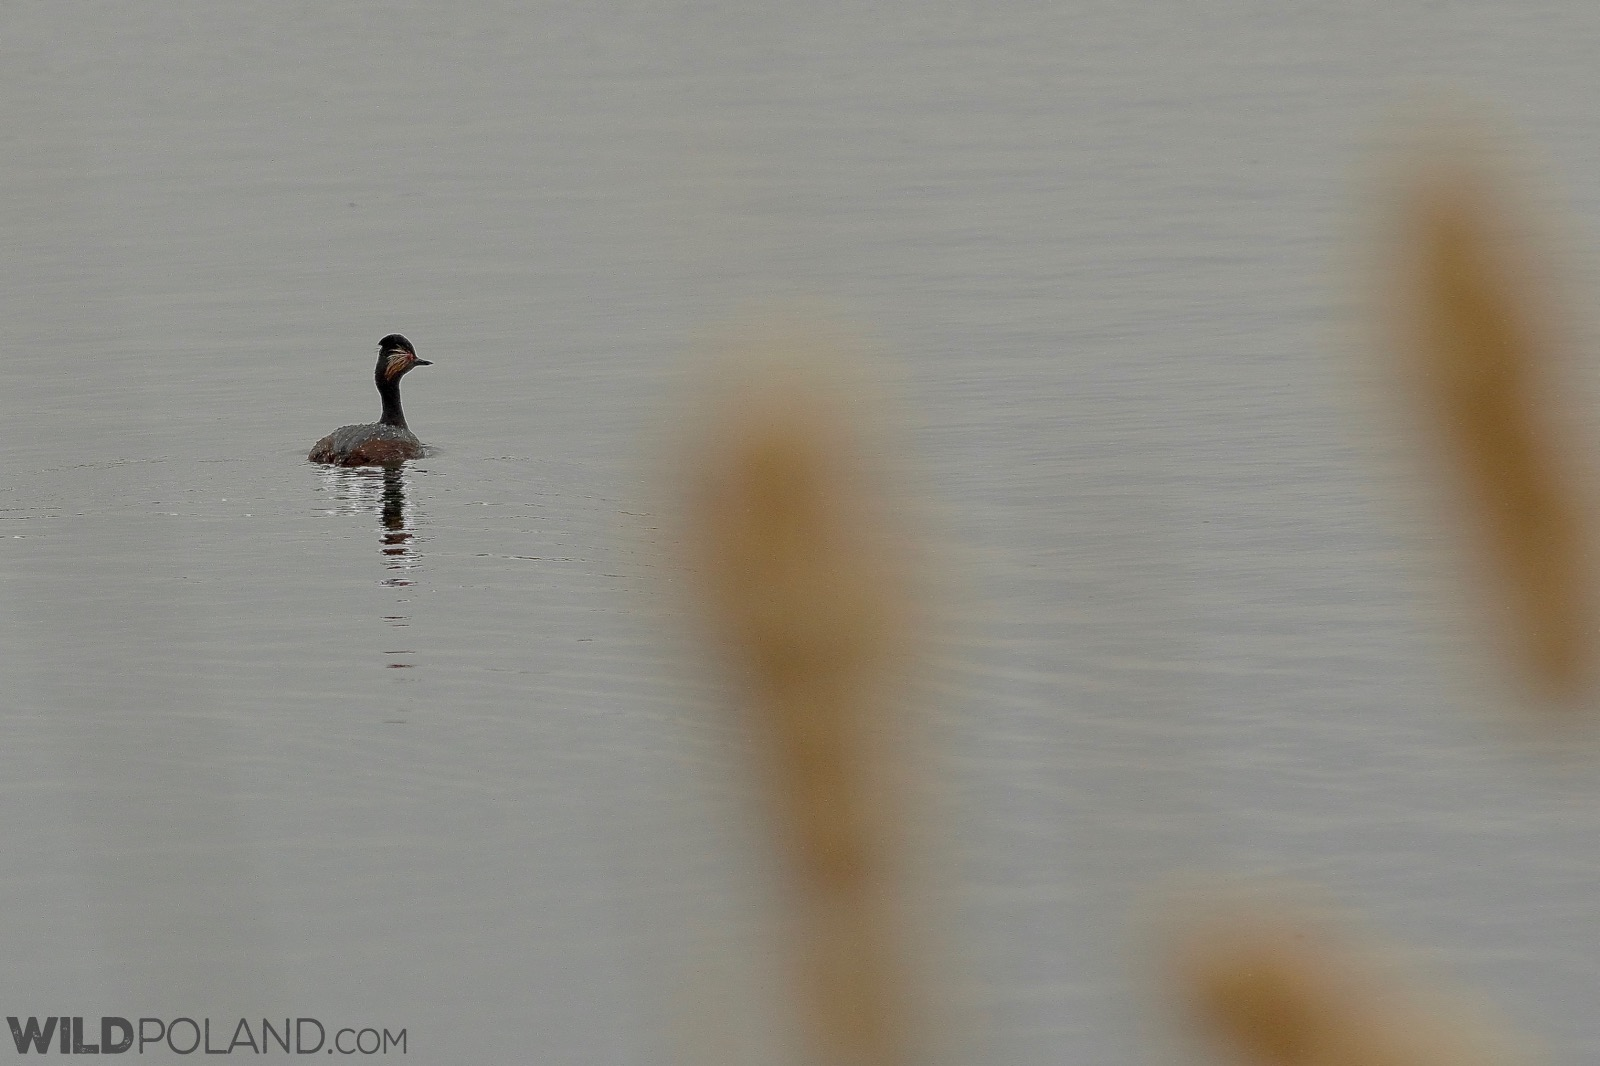 Black-necked grebe at Dojlidy Fishponds